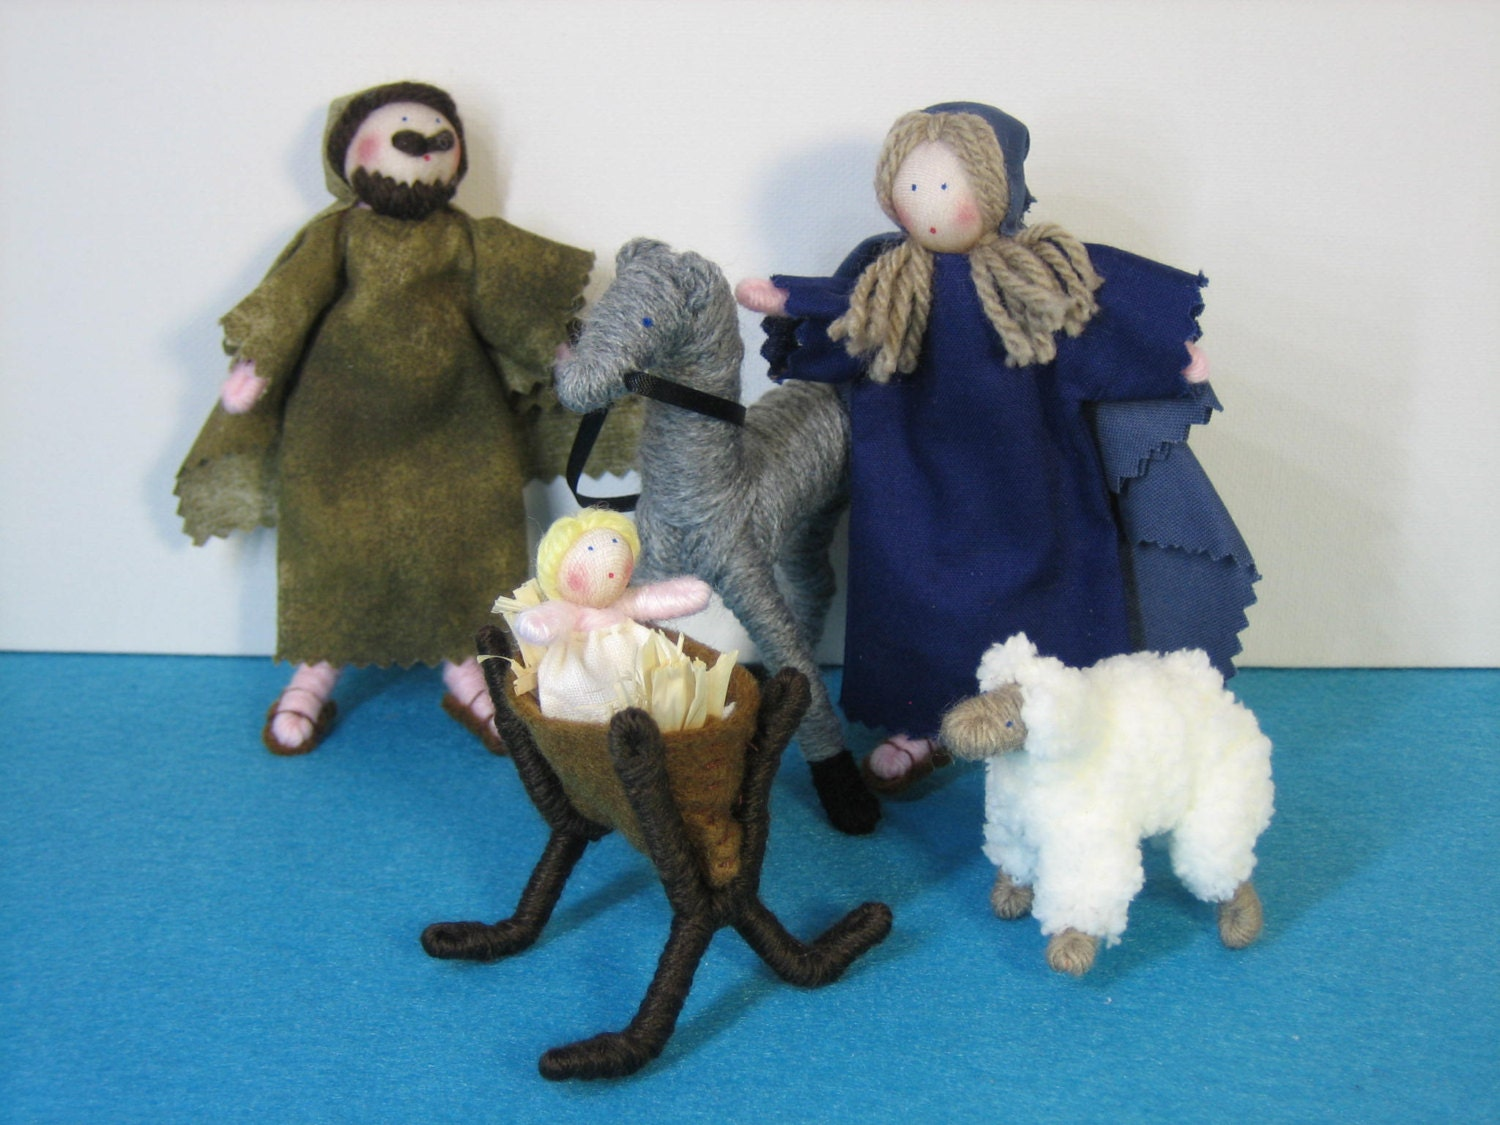 Nativity Set Of Handmade Dolls Etsy